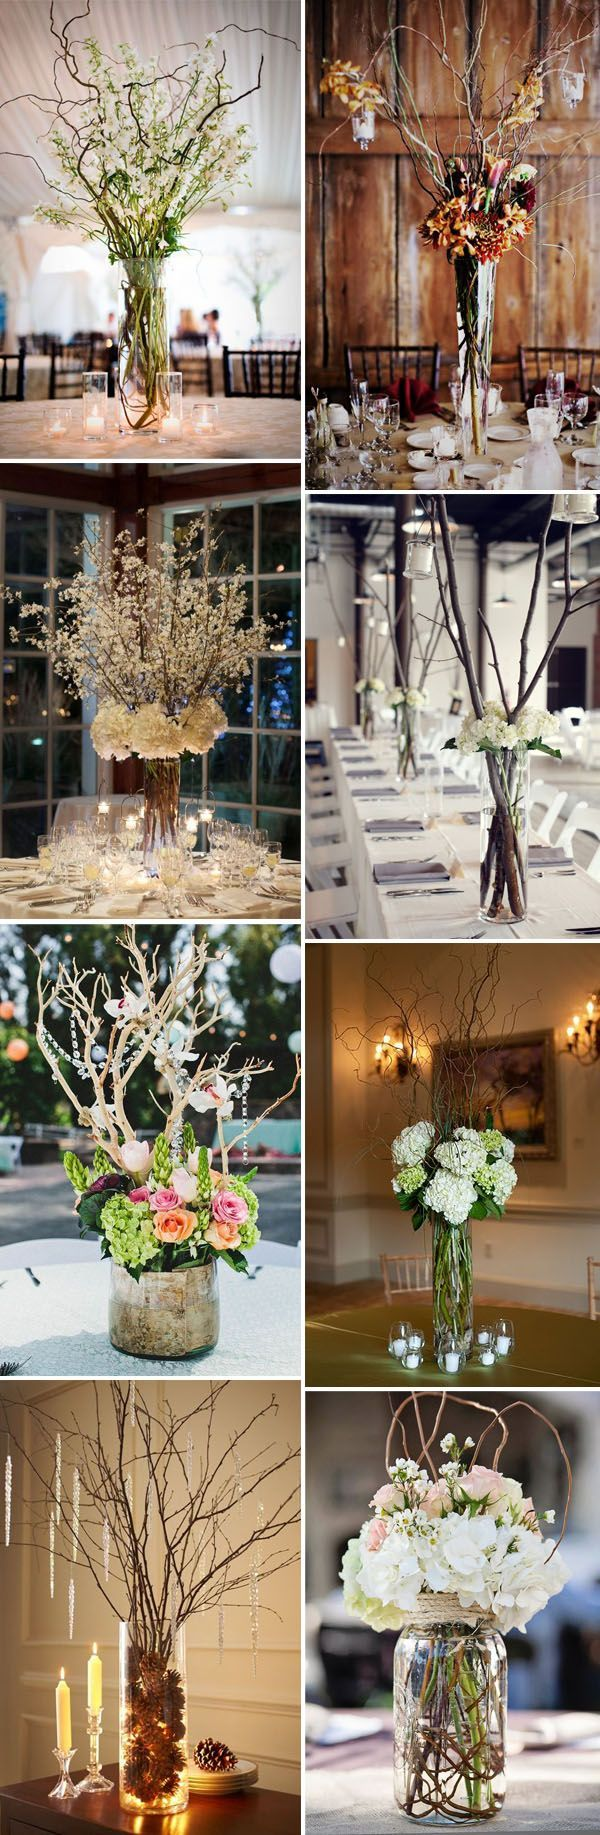 Best 25 wedding centerpieces ideas on pinterest for Diy wedding table decorations